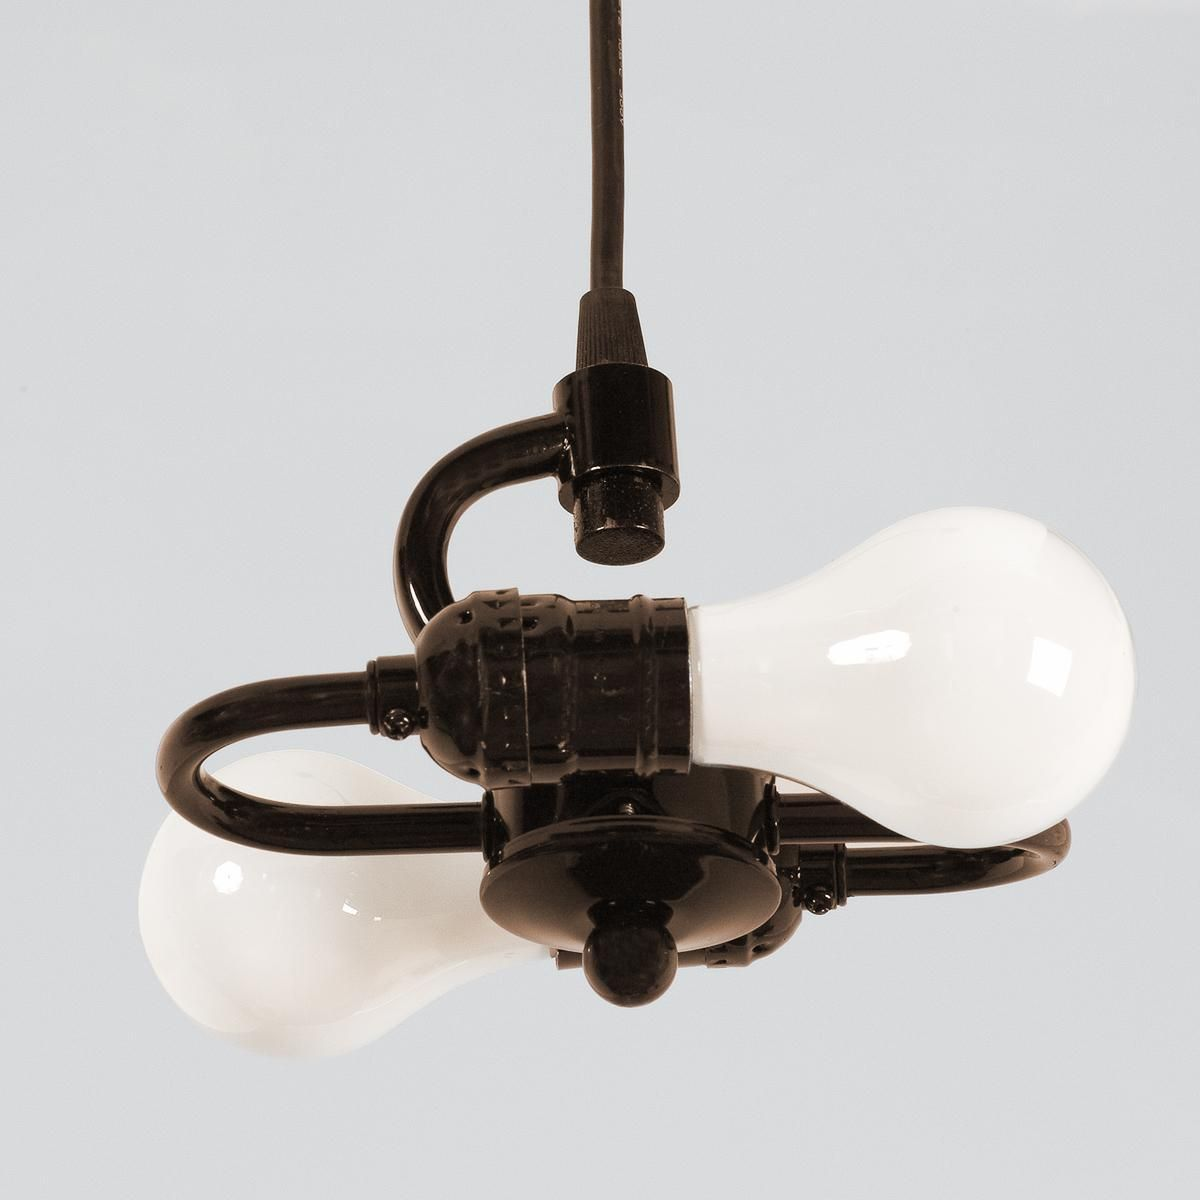 Shade Pendant Hardware Kit with extender for diffuser | Diffusers ...